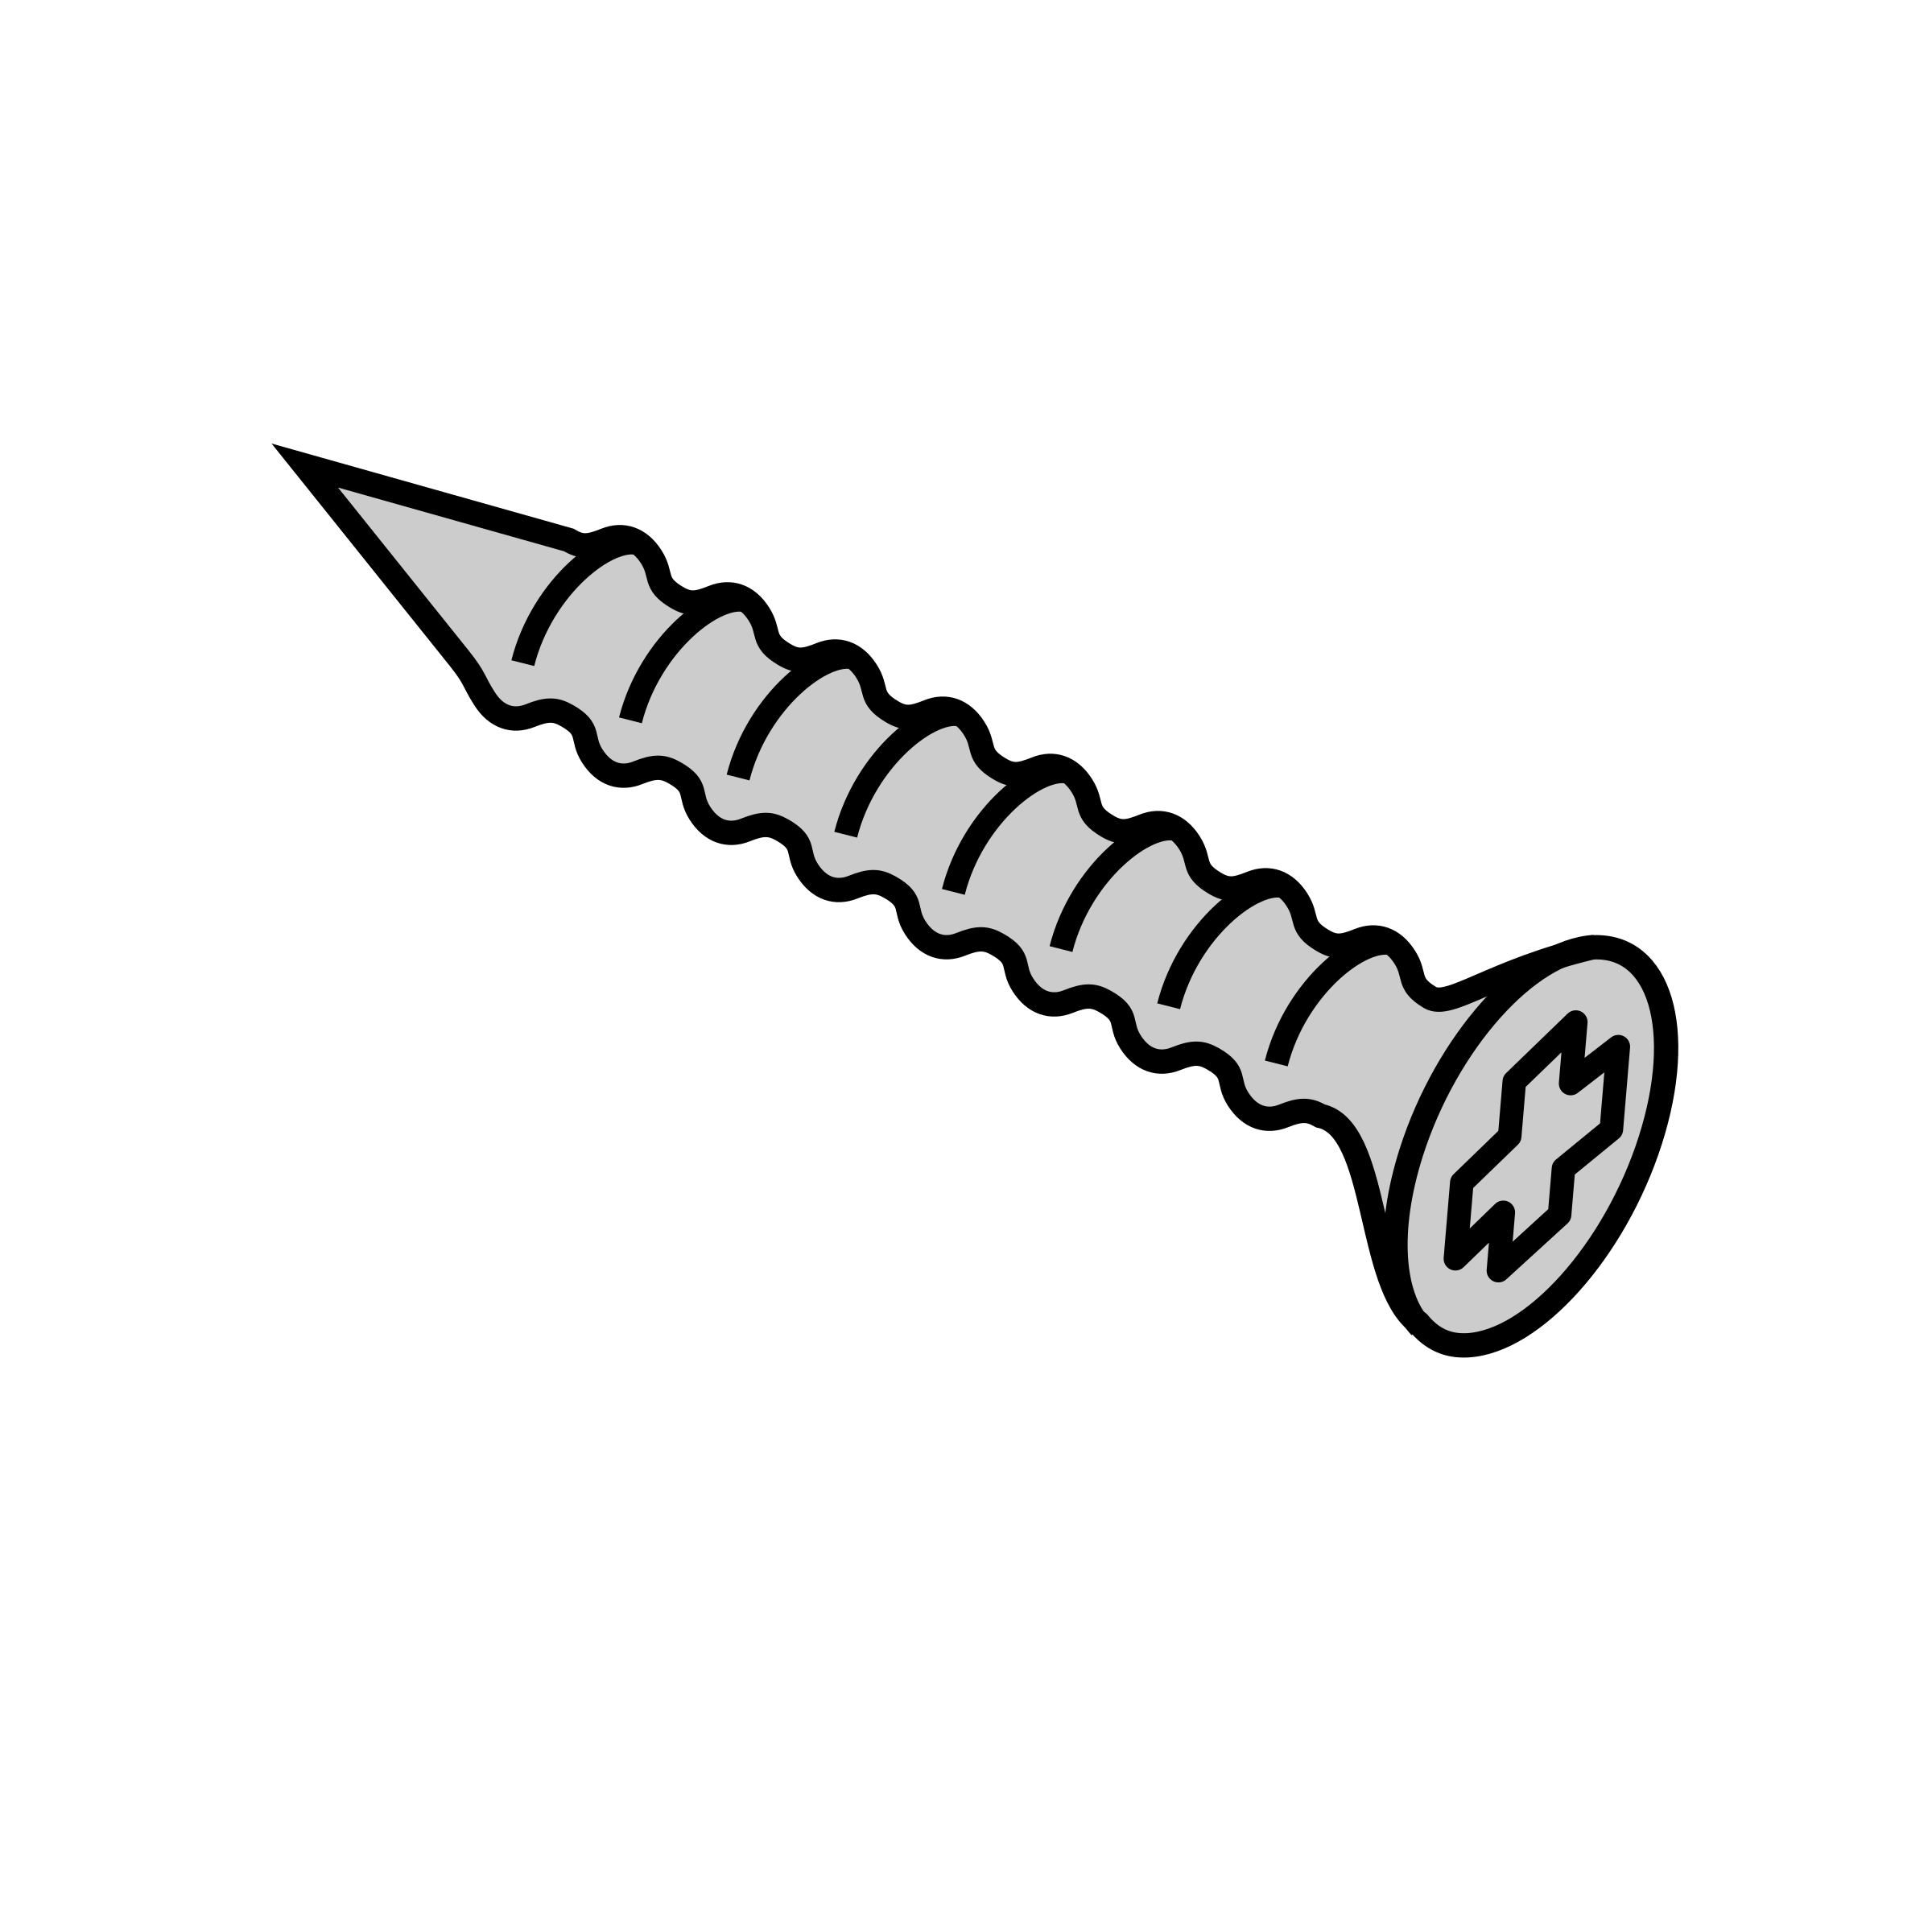 Bolt clipart fastener. Free screw cliparts download